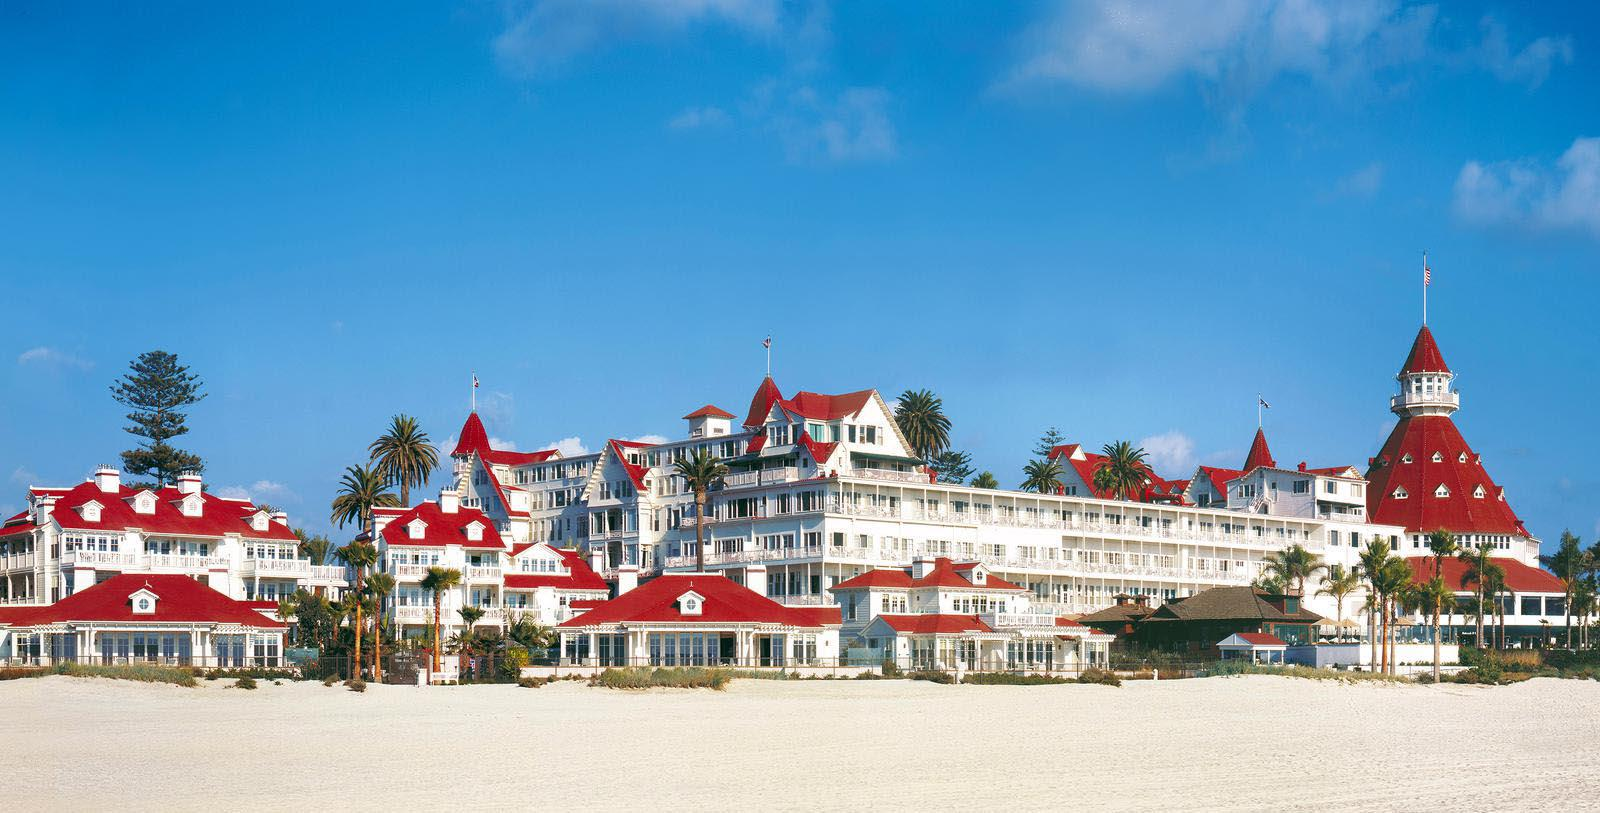 Image of Exterior View from Beach, Hotel del Coronado in Coronado, California, 1888, Member of Historic Hotels of America, Special Offers, Discounted Rates, Families, Romantic Escape, Honeymoons, Anniversaries, Reunions